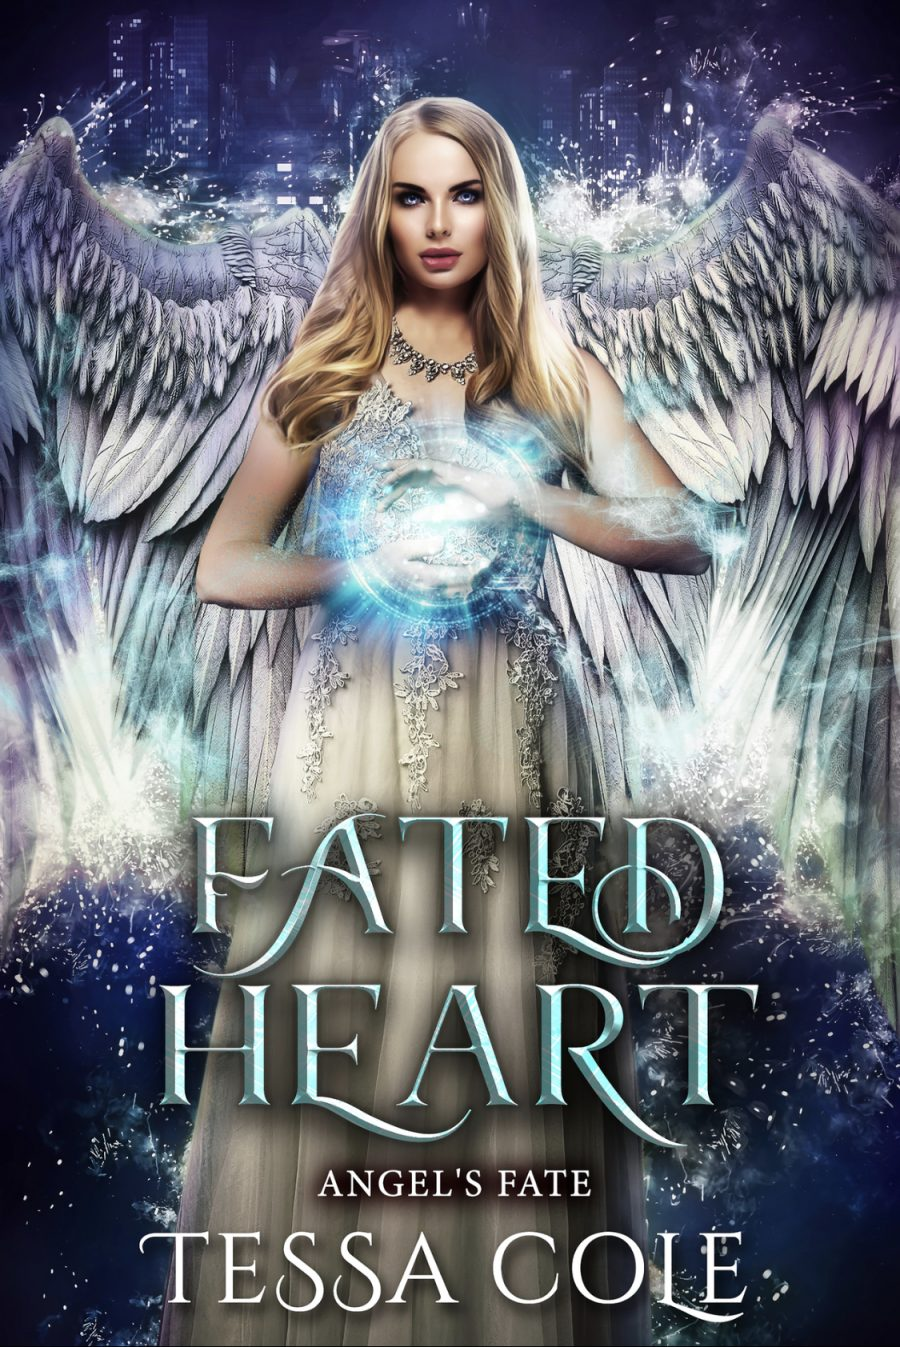 Fated Heart (Angel's Fate - Book 6) by Tessa Cole - A Book Review #BookReview #5Stars #ParanormalFantasy #SeriesComplete #KindleUnlimited #KU #Angels